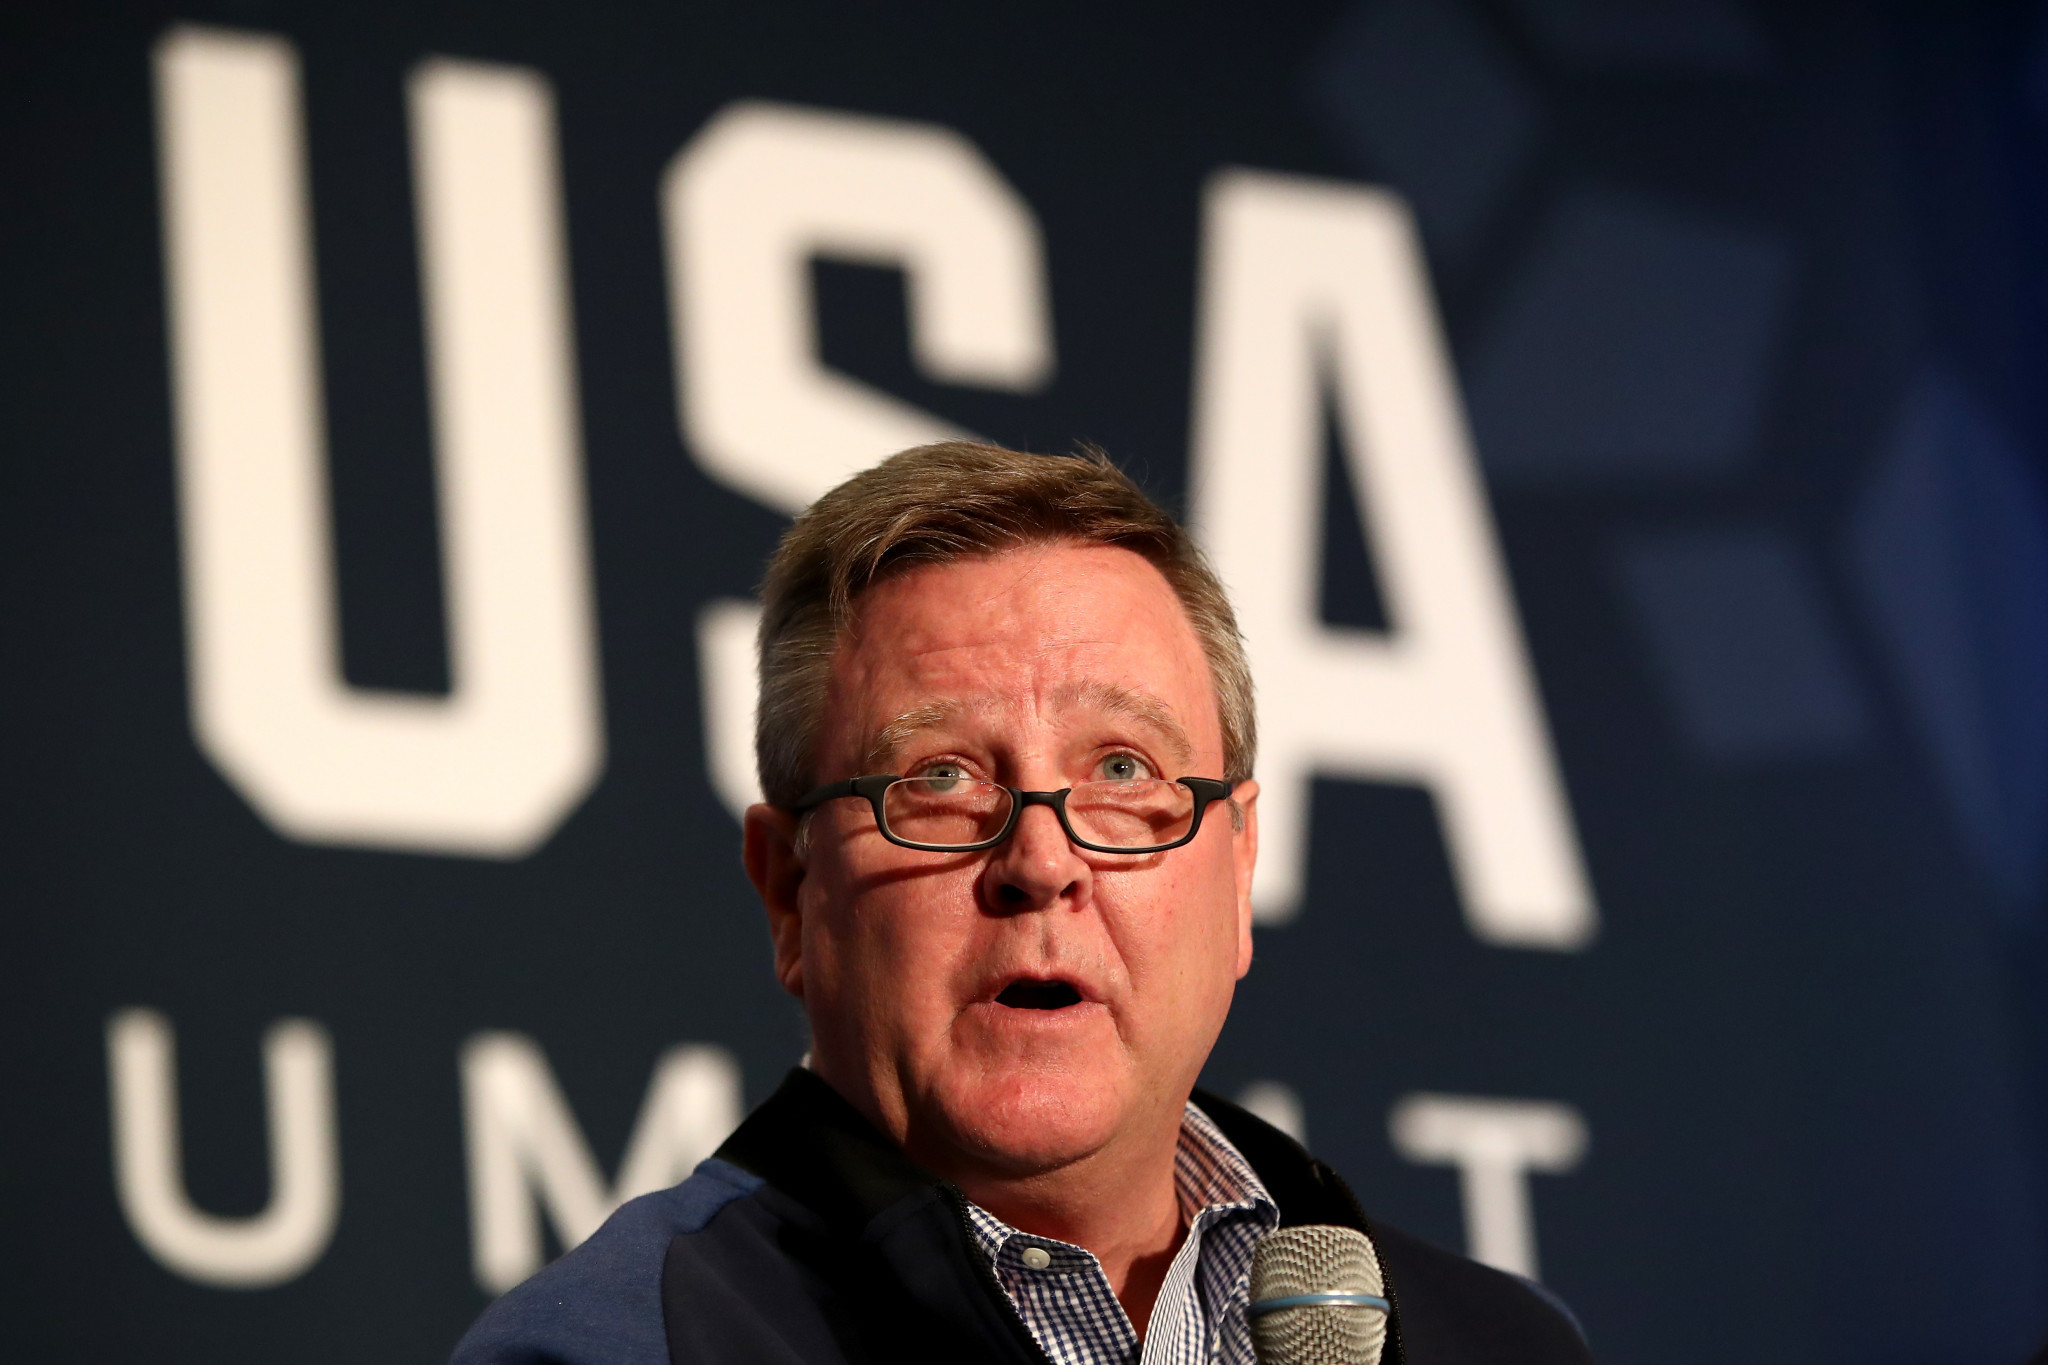 USOC demand resignation of full USA Gymnastics Board and threaten to decertify National Governing Body